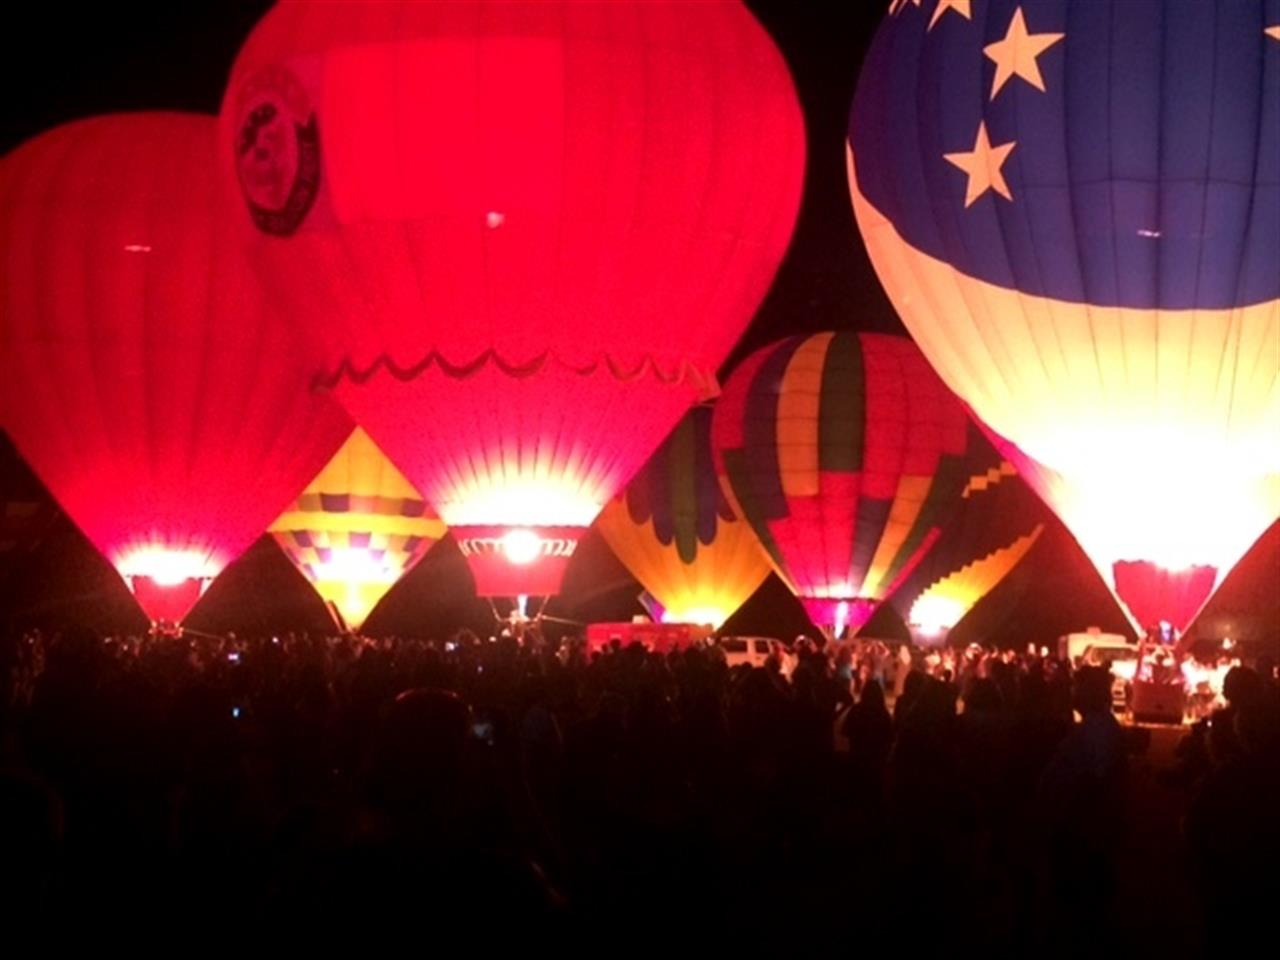 Balloon Fest in nearby Fuquay Varina, NC